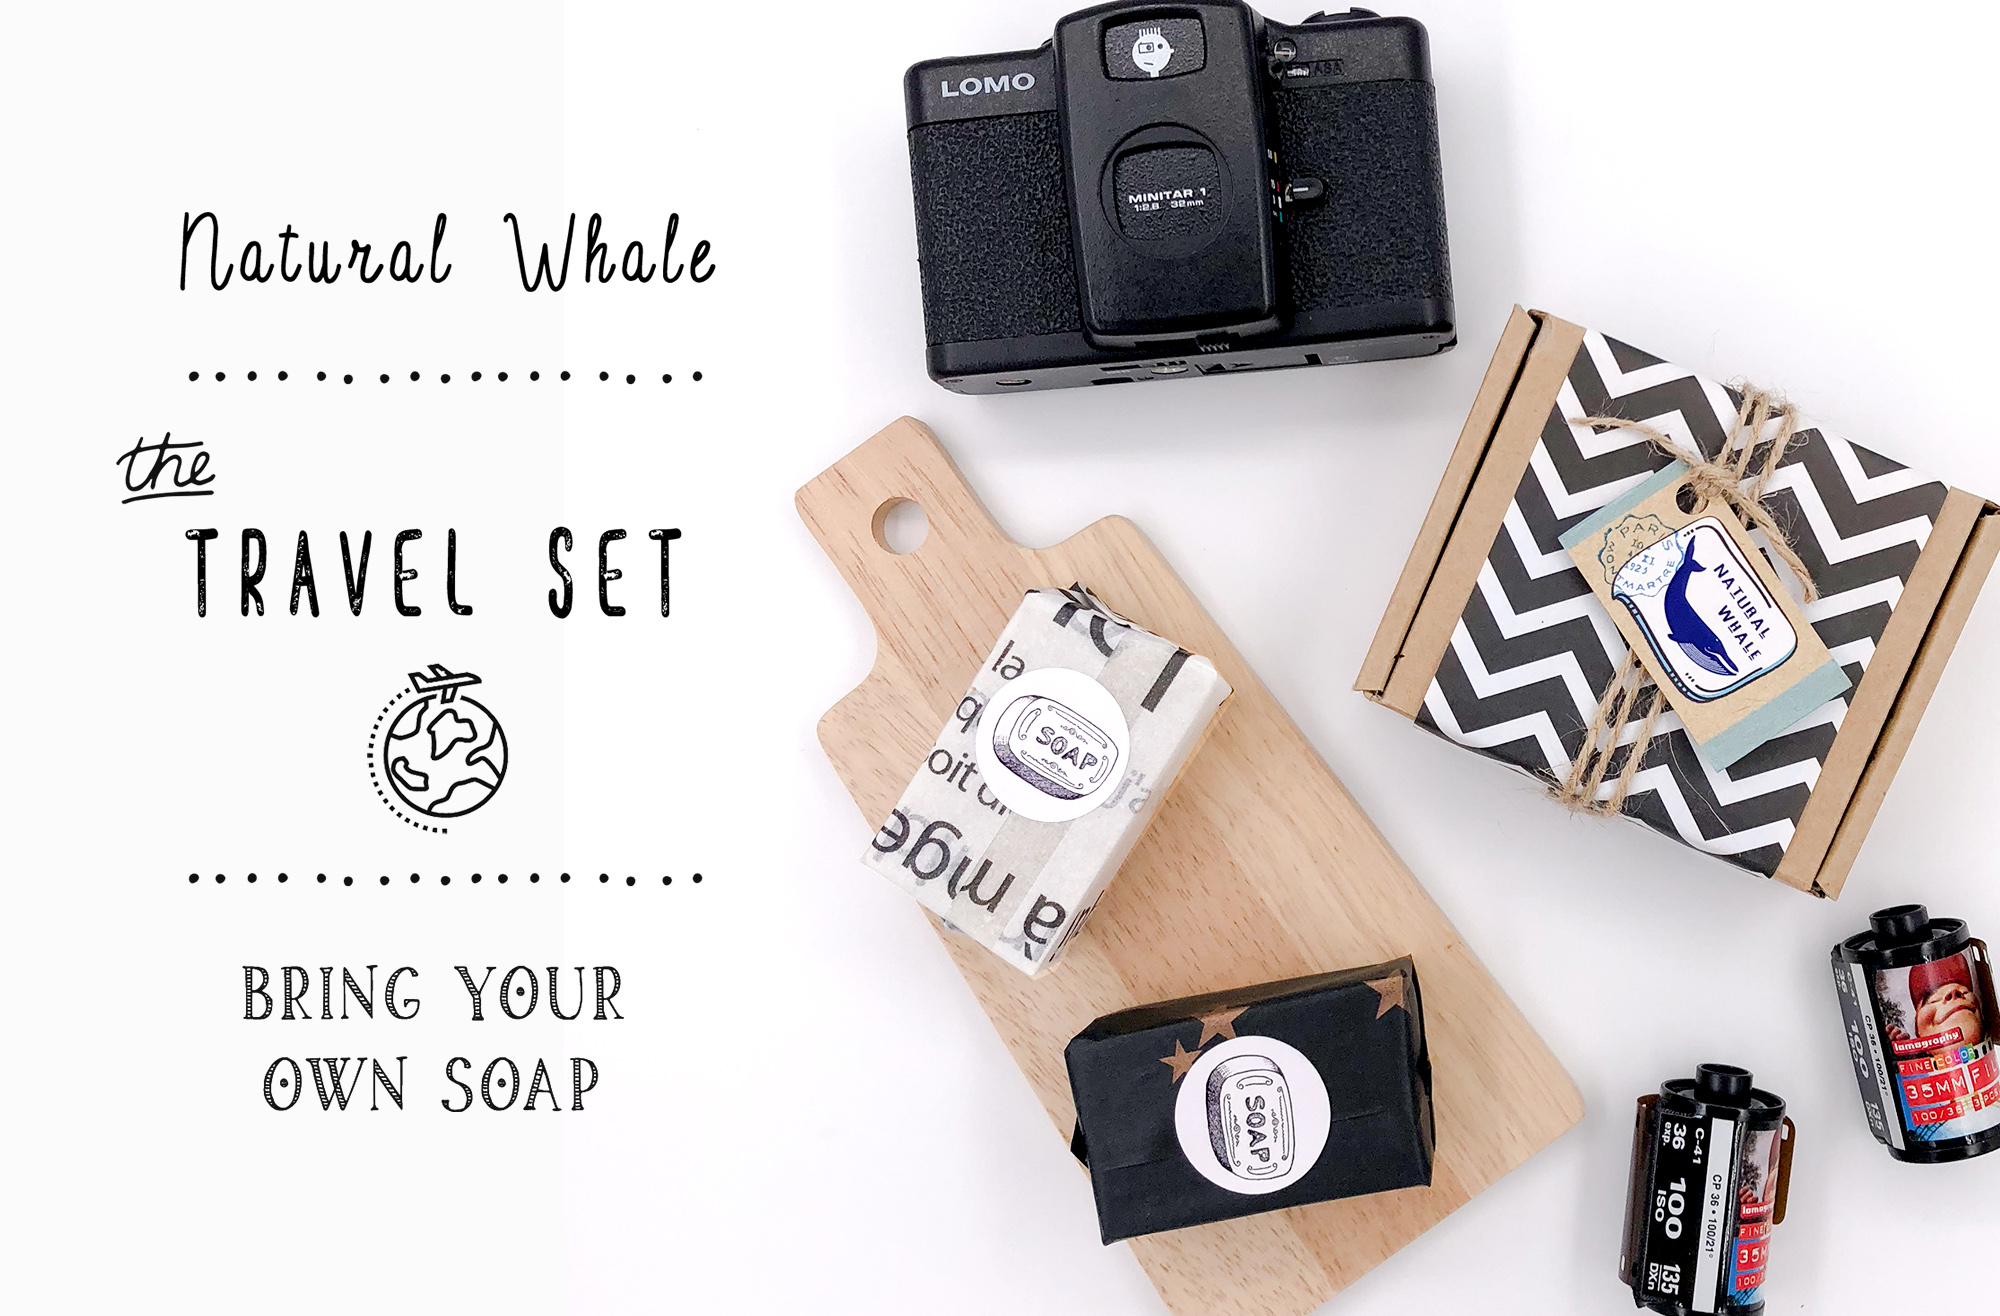 Travel Soap Set is newly launched today